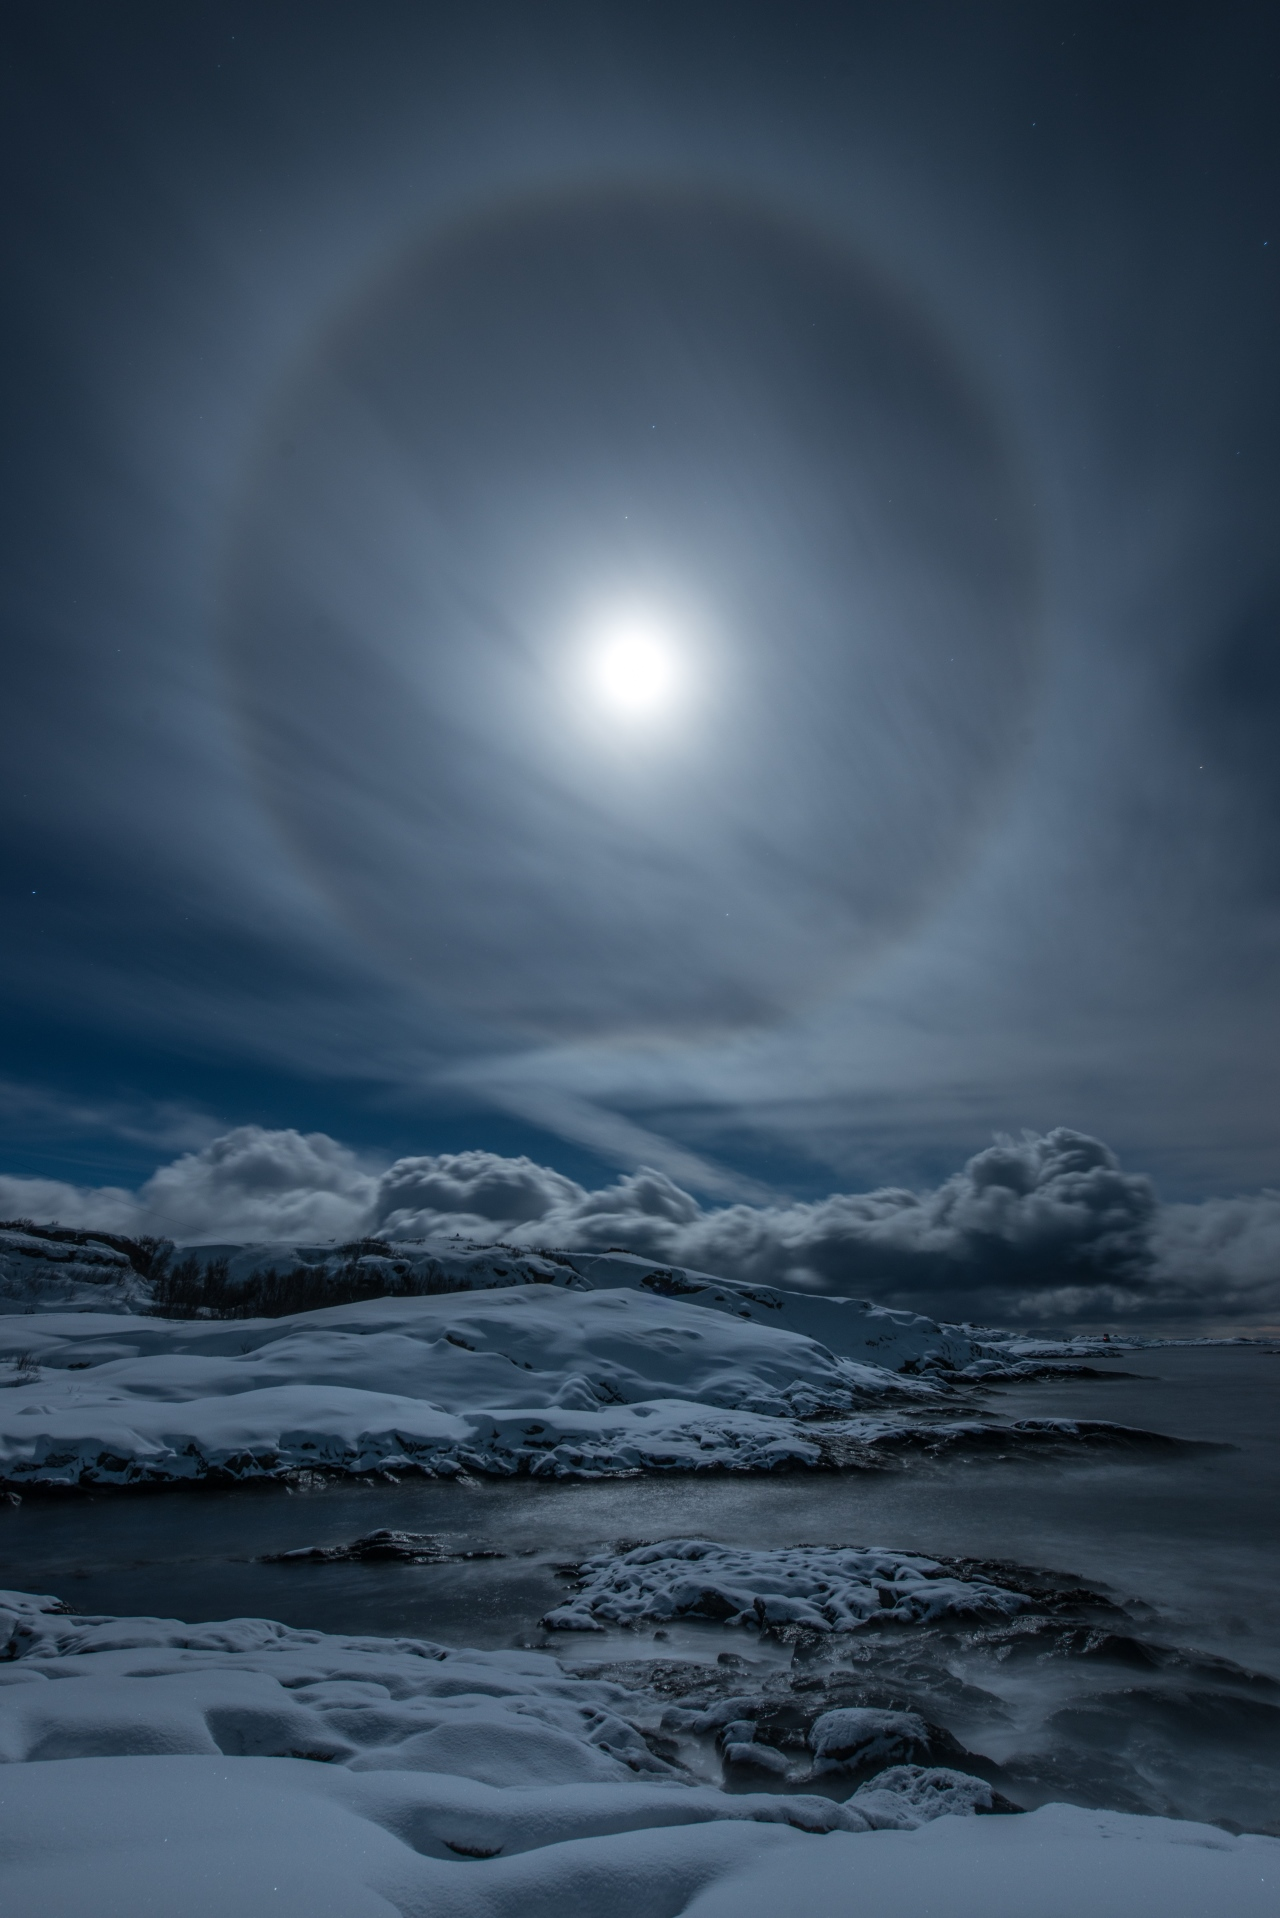 Halo by Bernt Olsen Our Moon Astronomy Photographer of the Year 2019